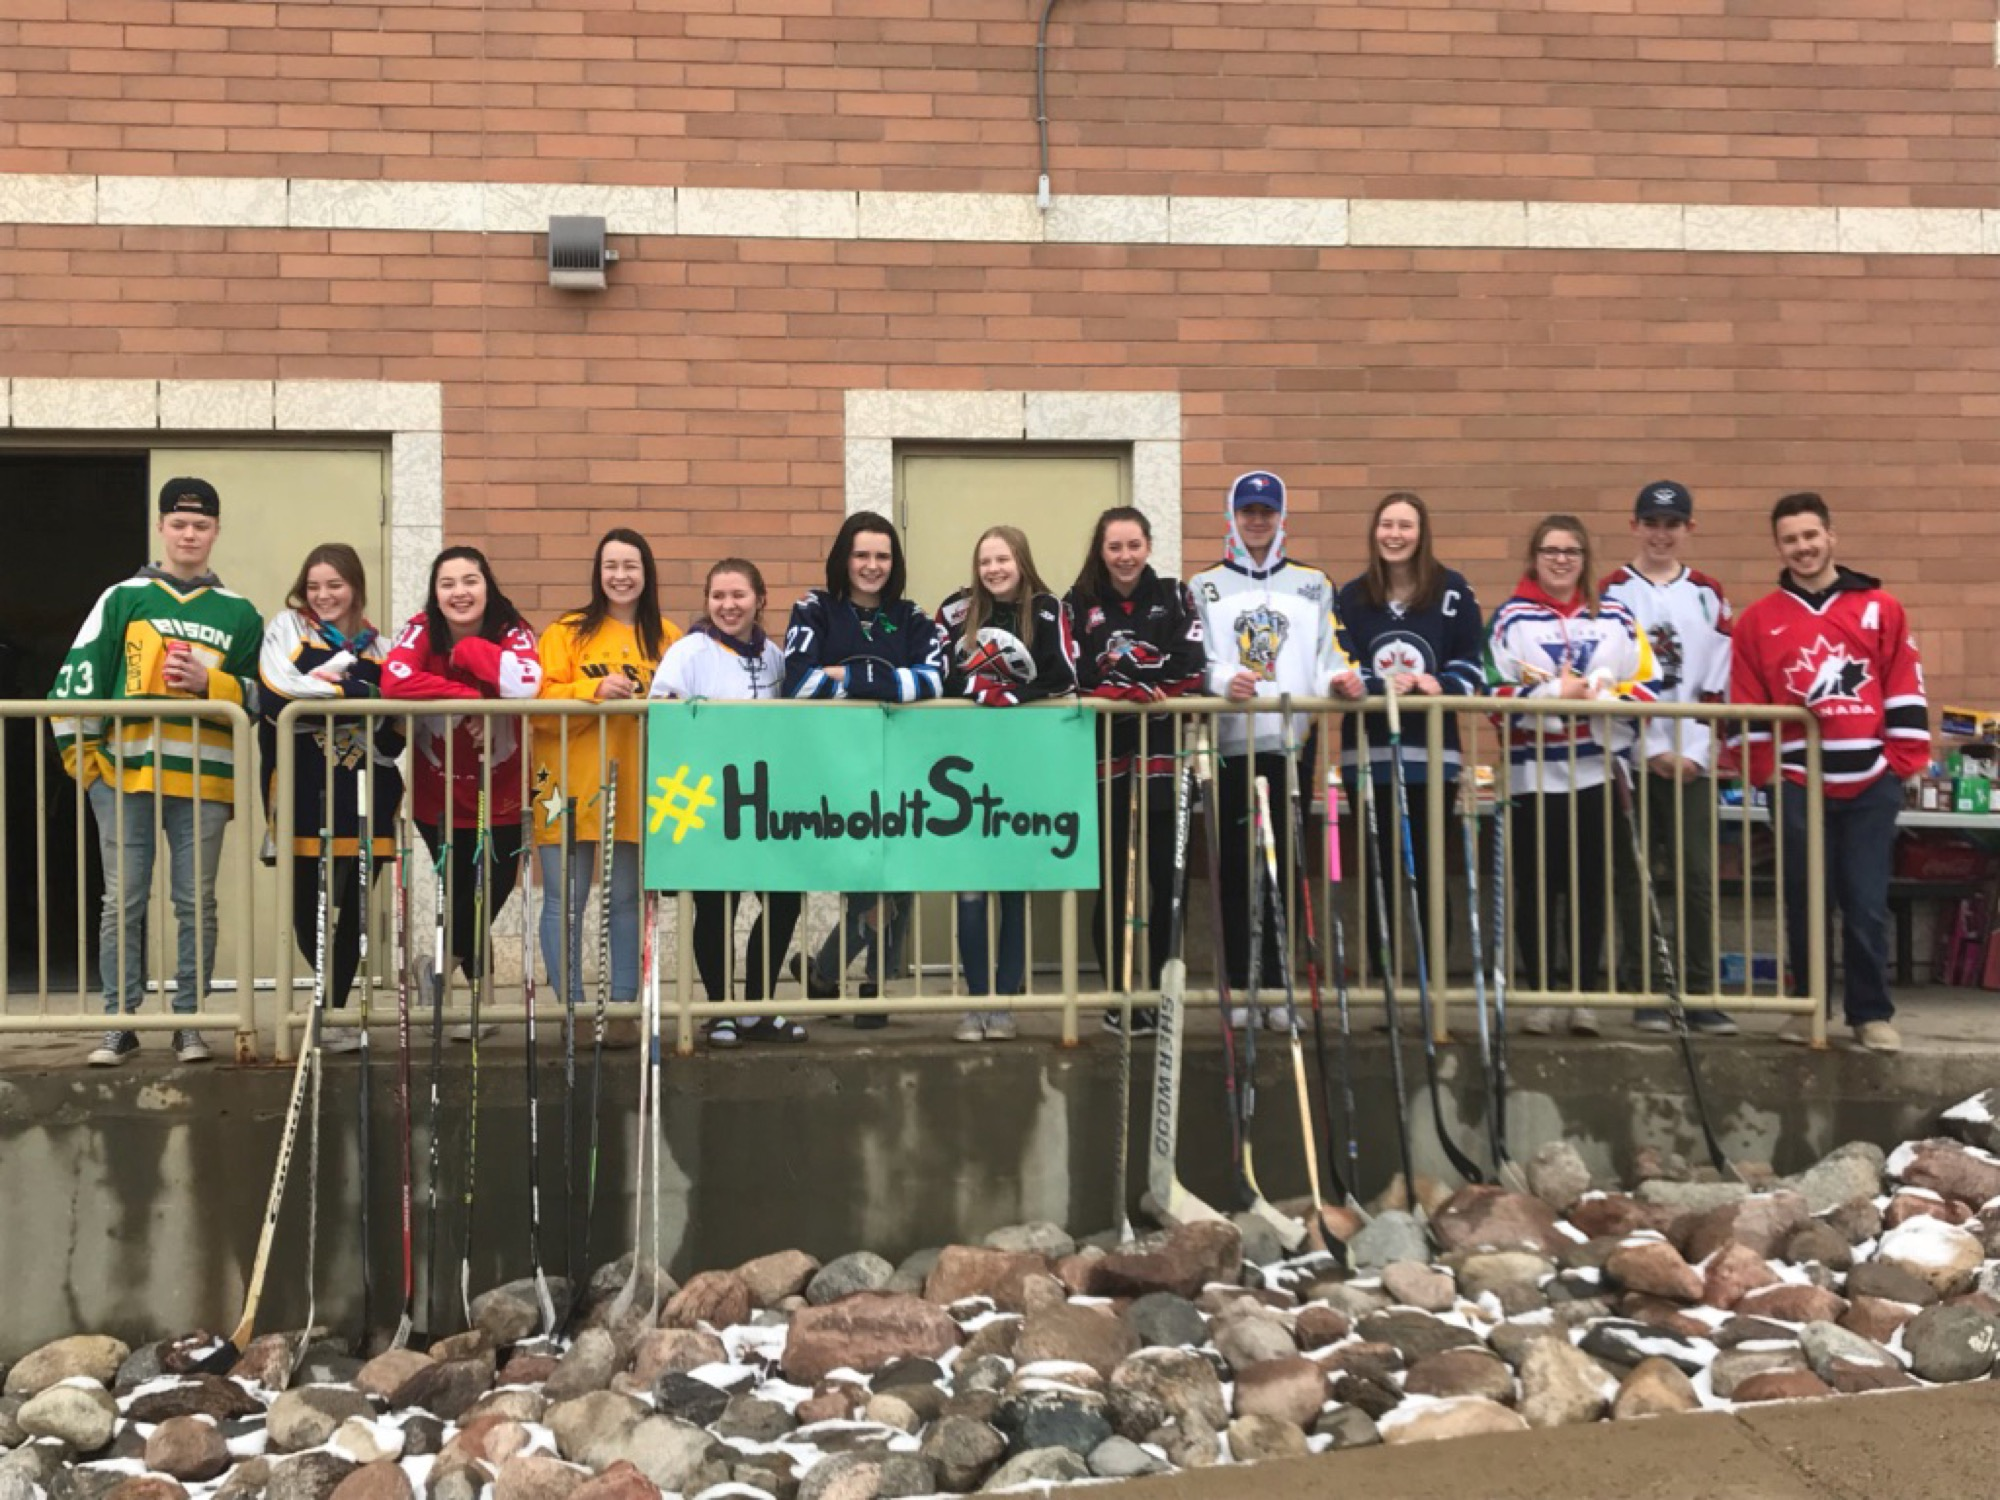 Students from Virden Collegiate Institute got together for a barbecue fundraiser on Thursday, raising more than $11,000 in support of the Humboldt Broncos hockey team.